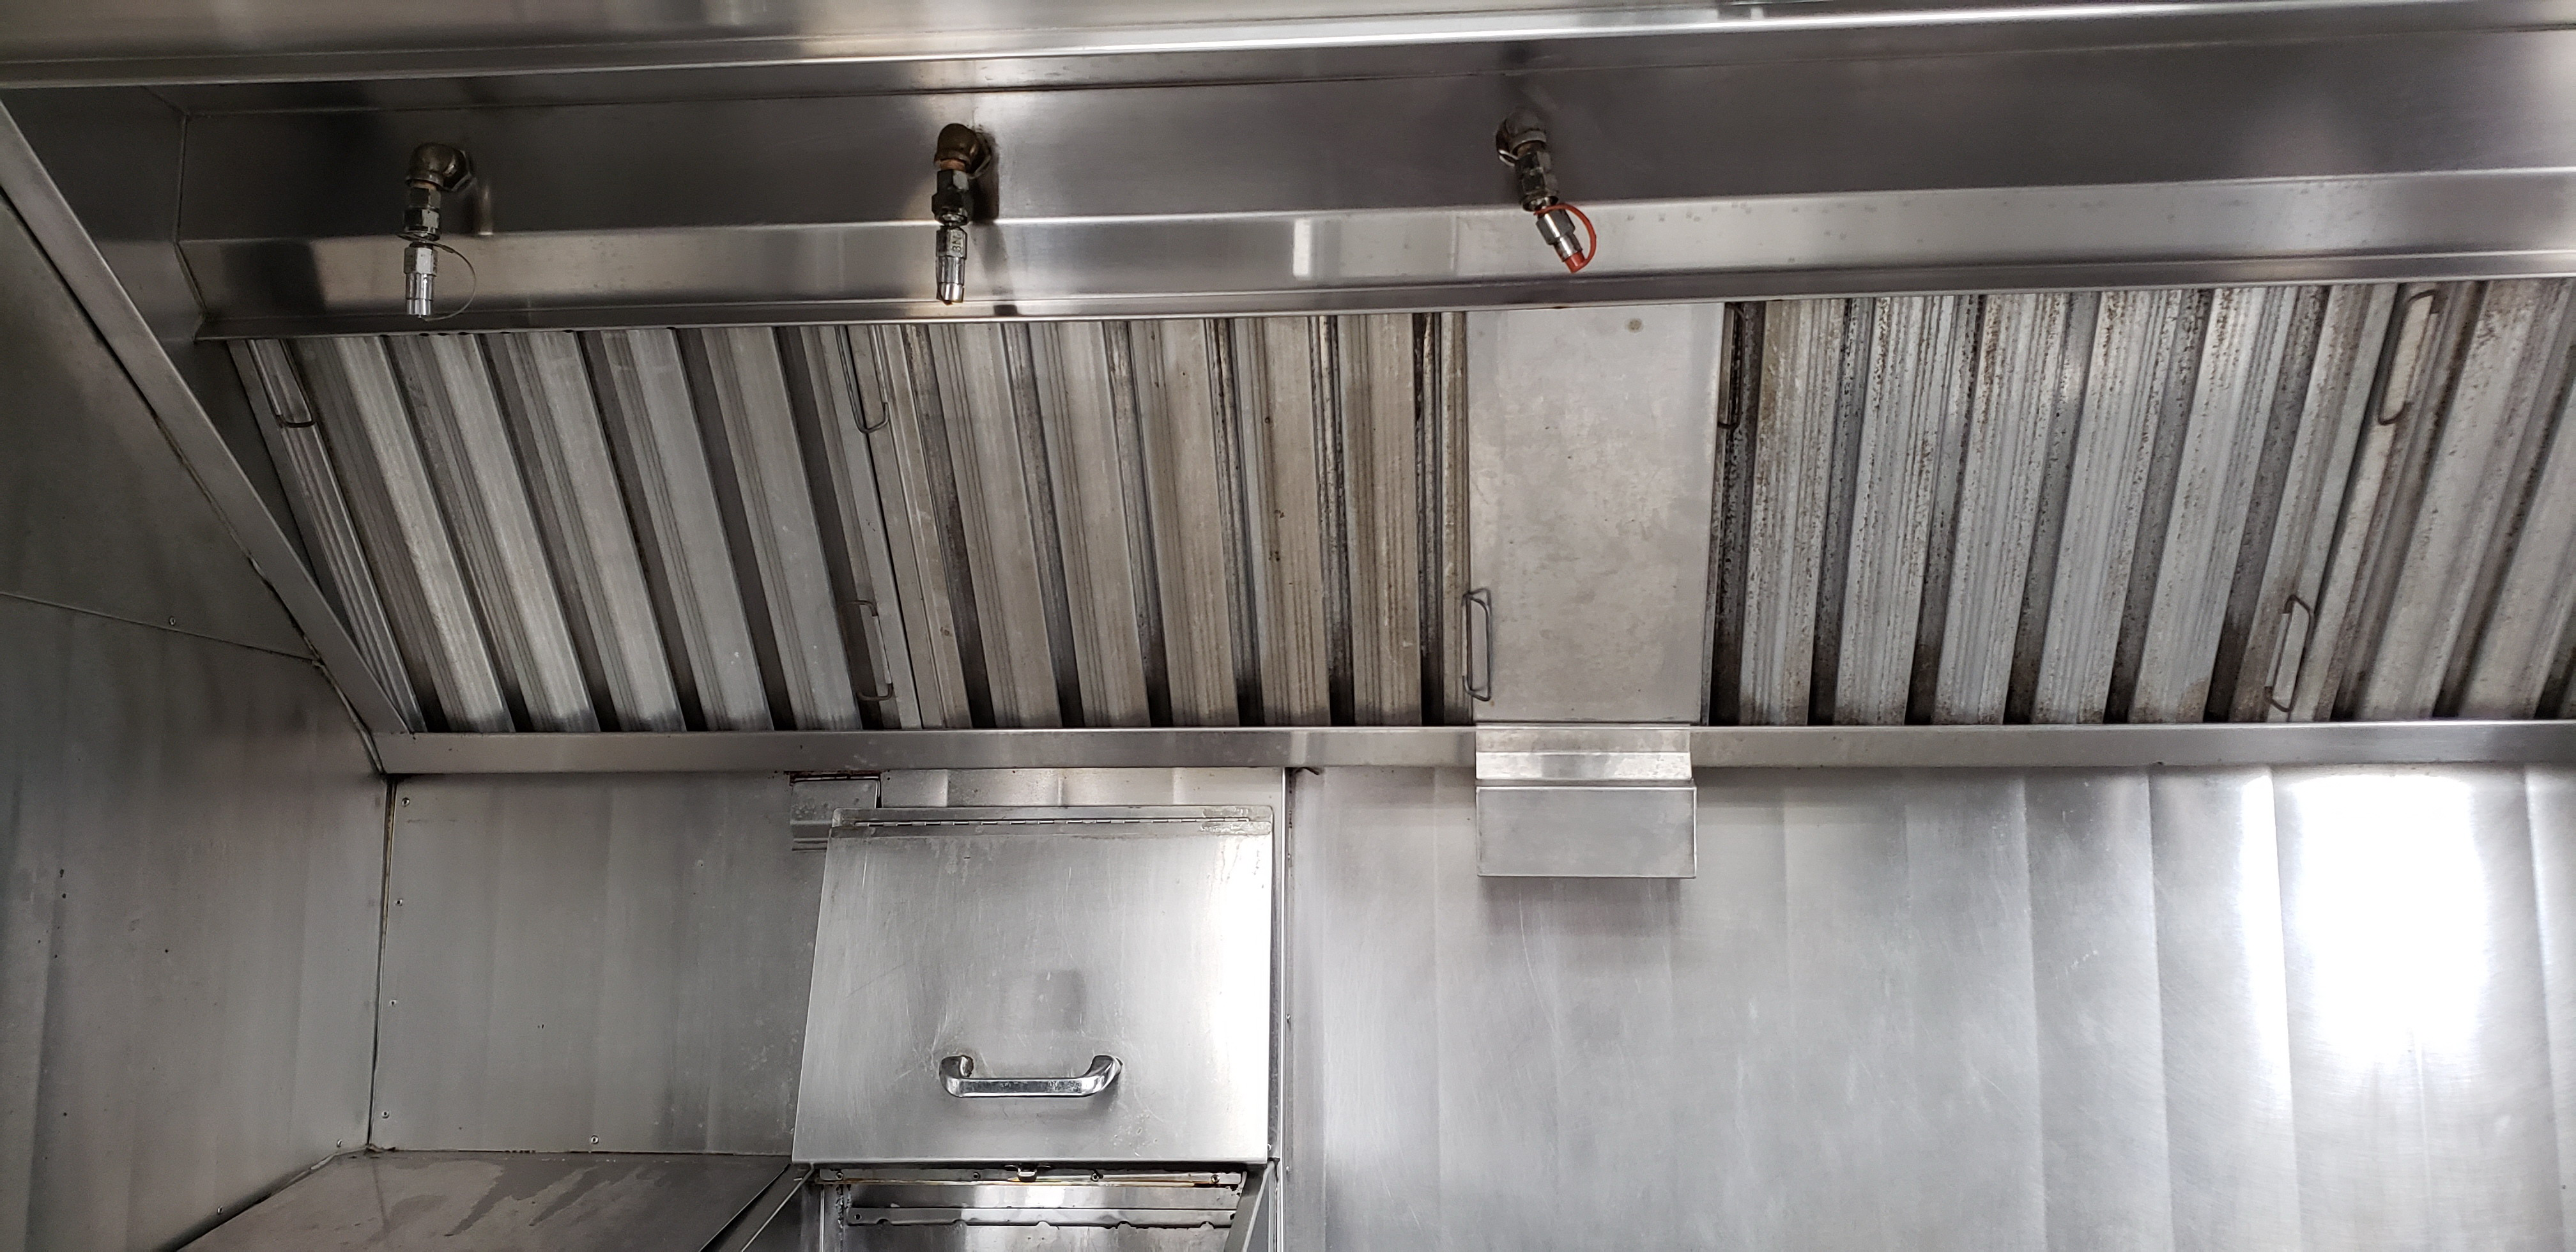 Armenco Catering Truck Mfg Co Inc 18 Food Truck For Sale